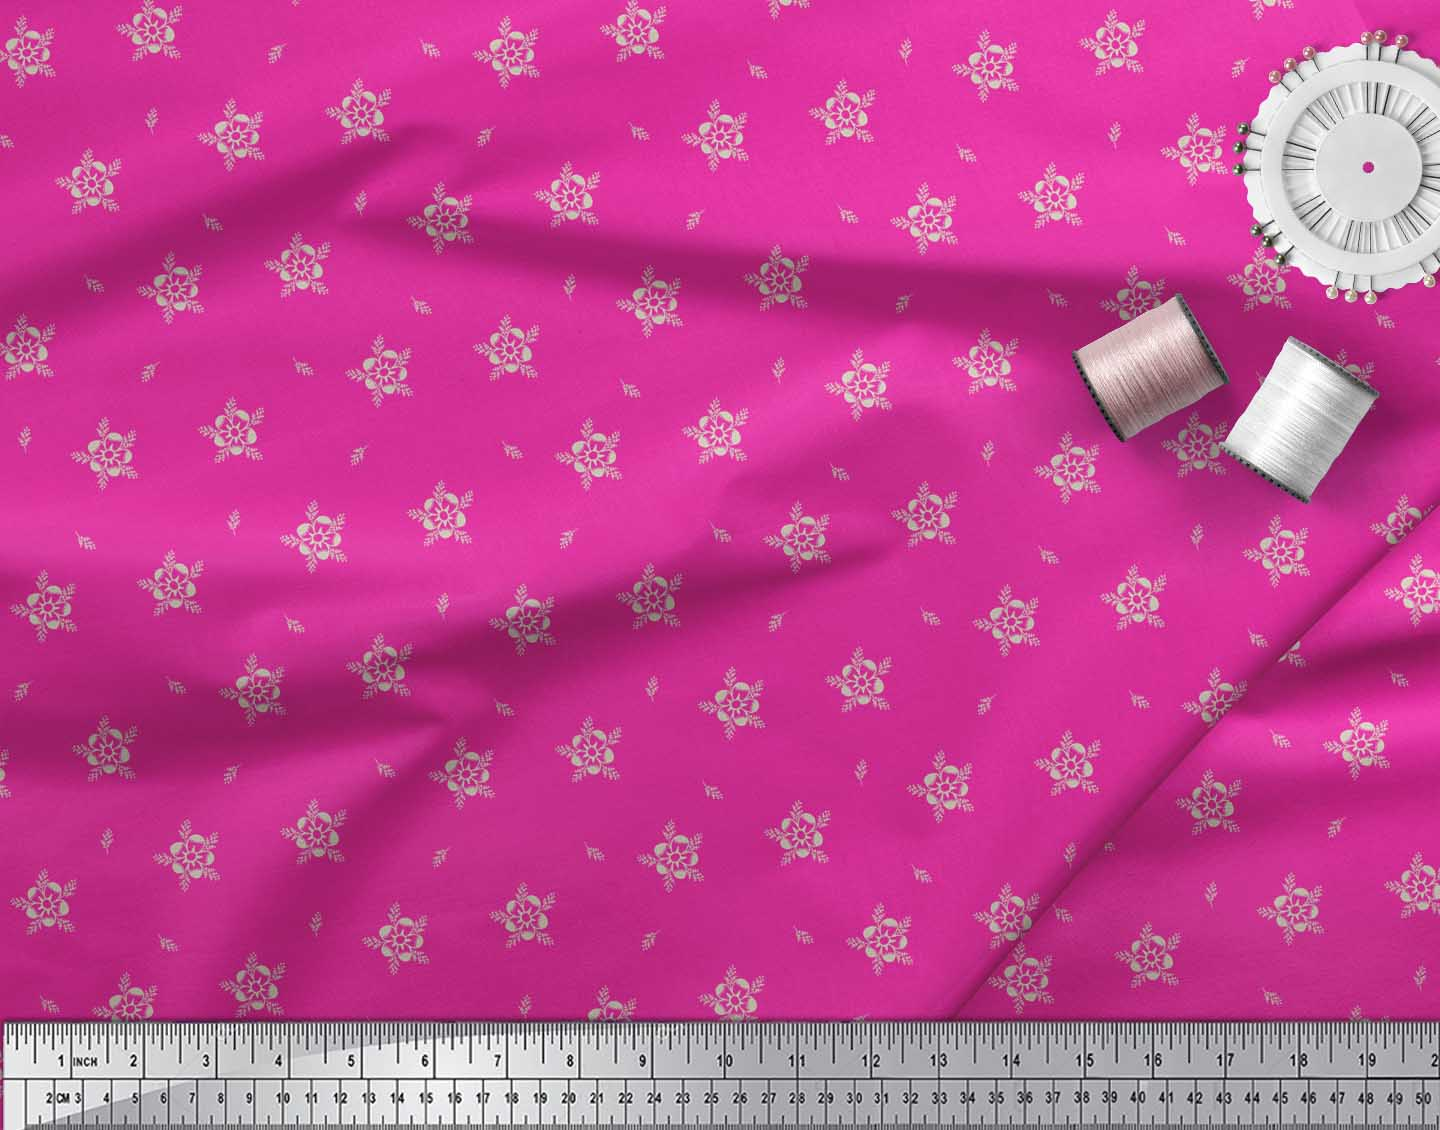 Soimoi-Pink-Cotton-Poplin-Fabric-Artistic-Floral-Fabric-Prints-By-DCh thumbnail 4